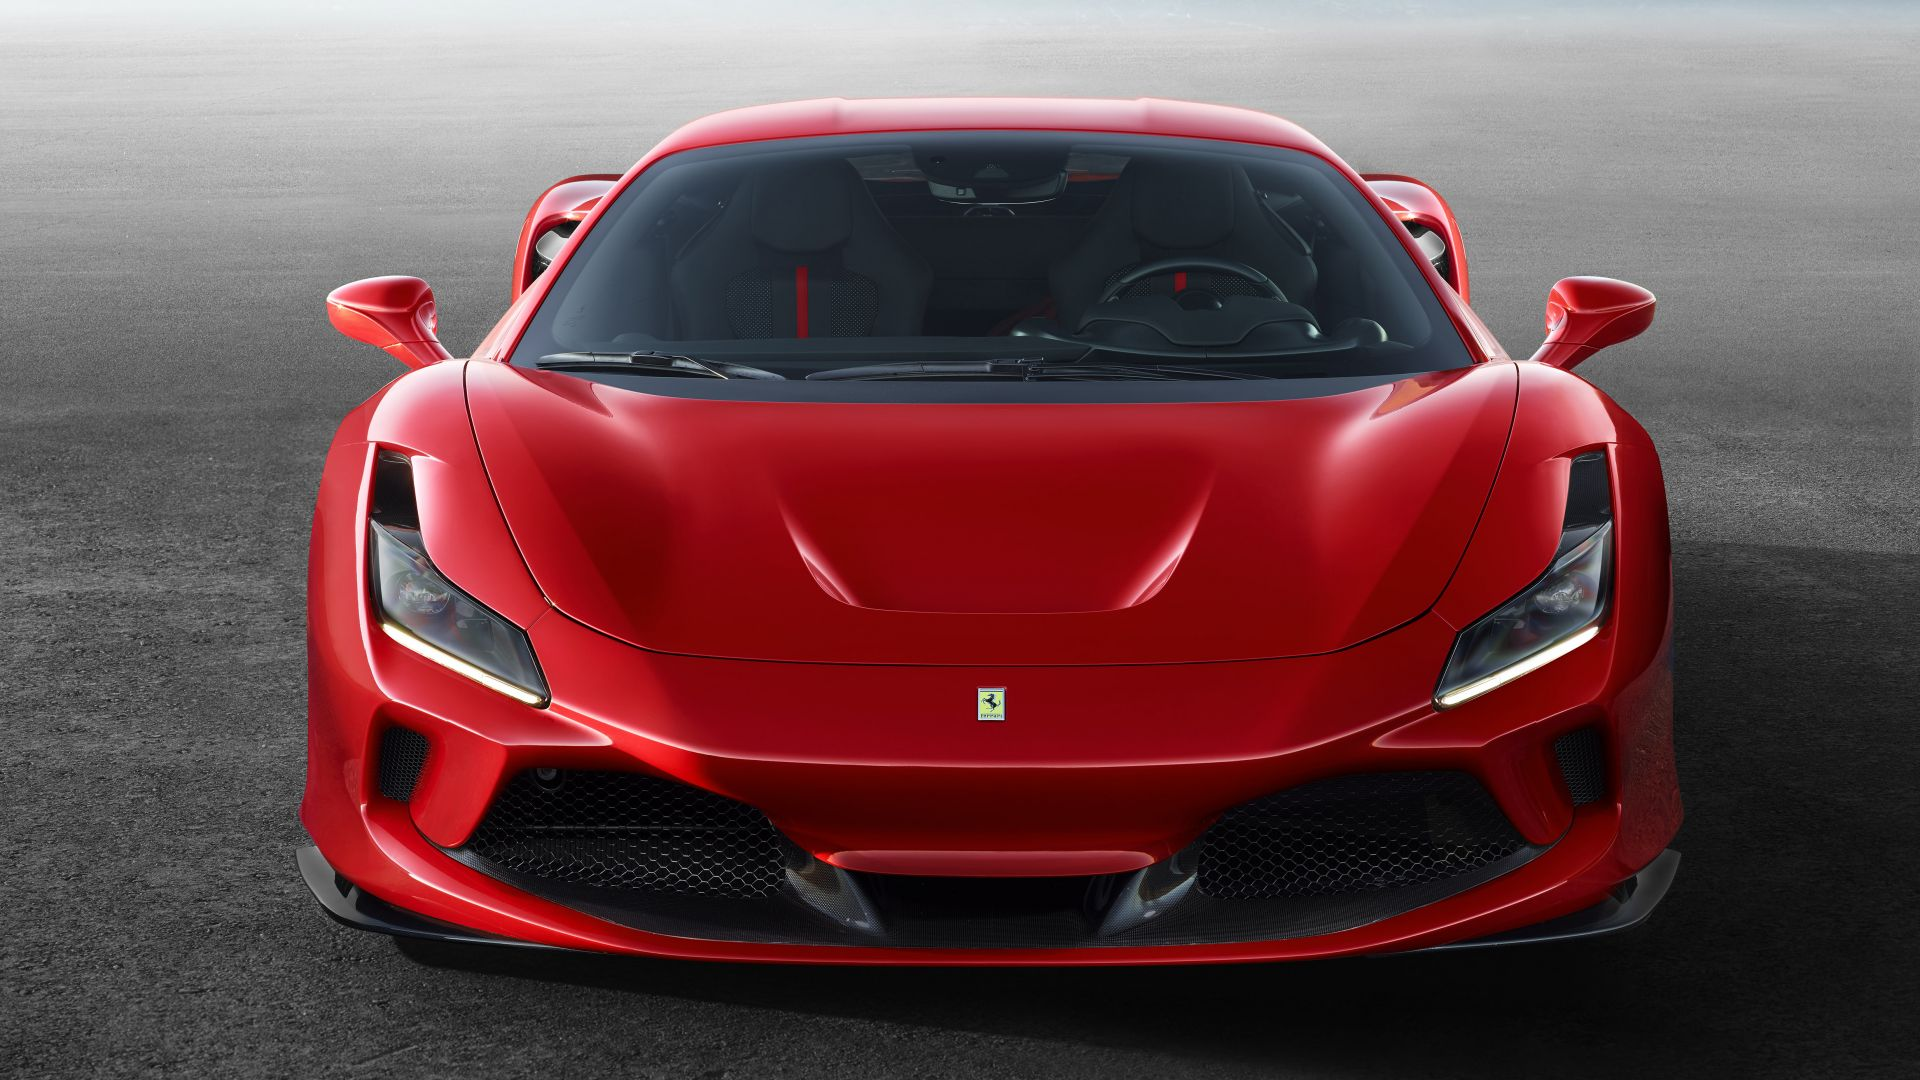 Ferrari F8 Tributo Red Car Desktop Wallpaper HD 1080p